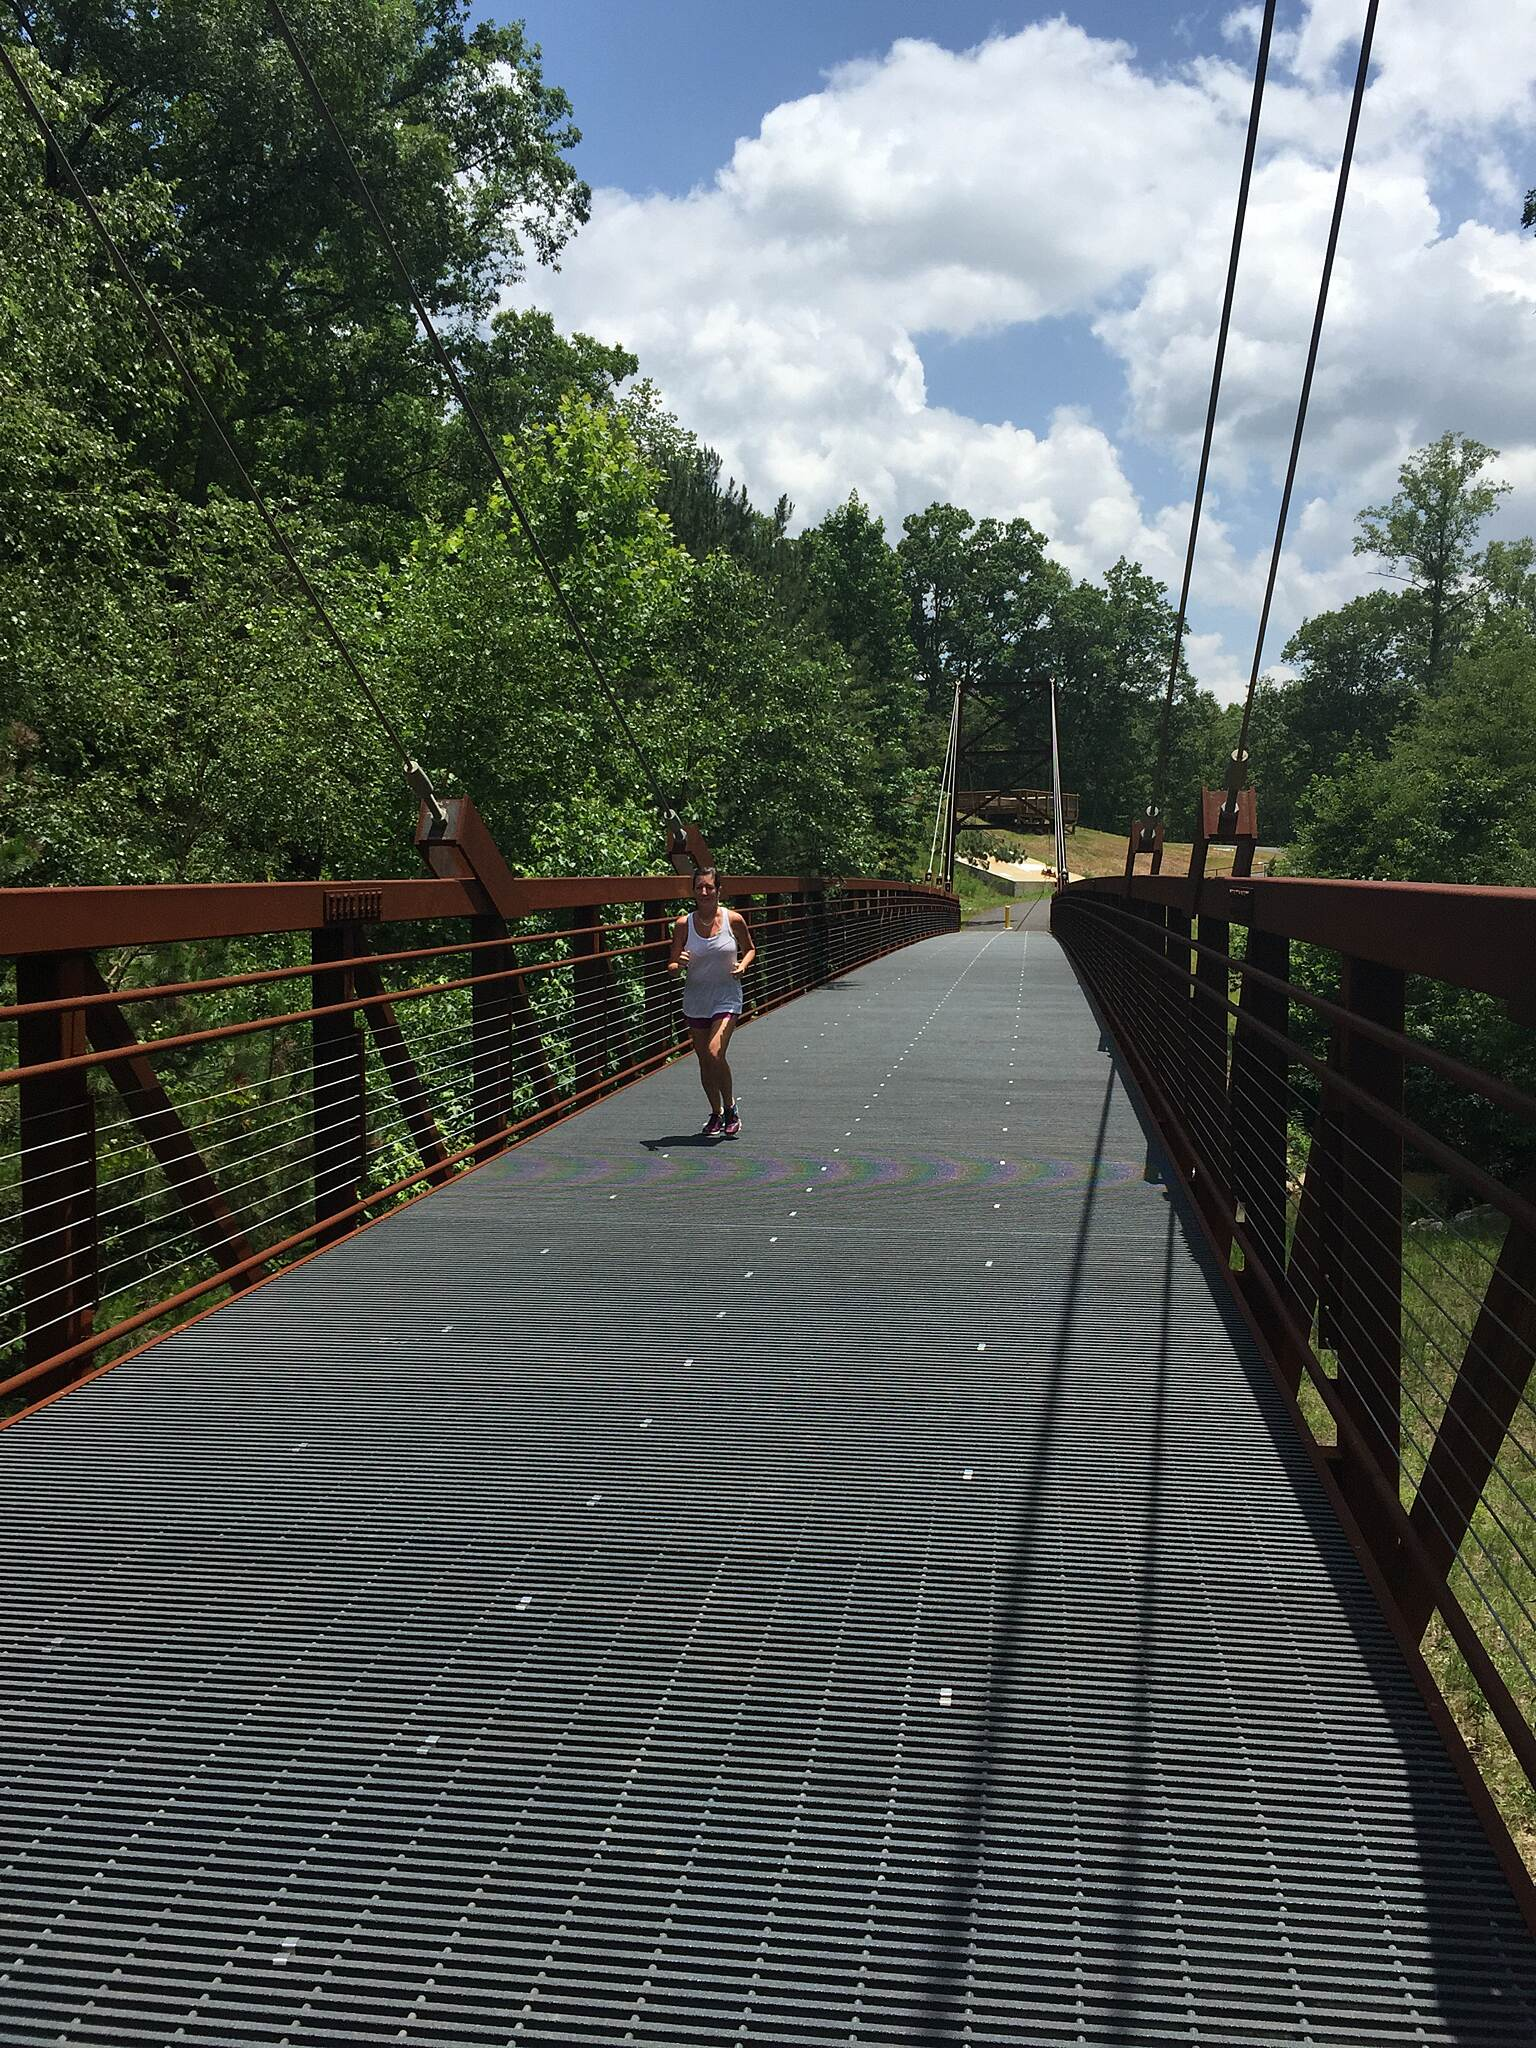 Ivy Creek Greenway really cool suspension bridge